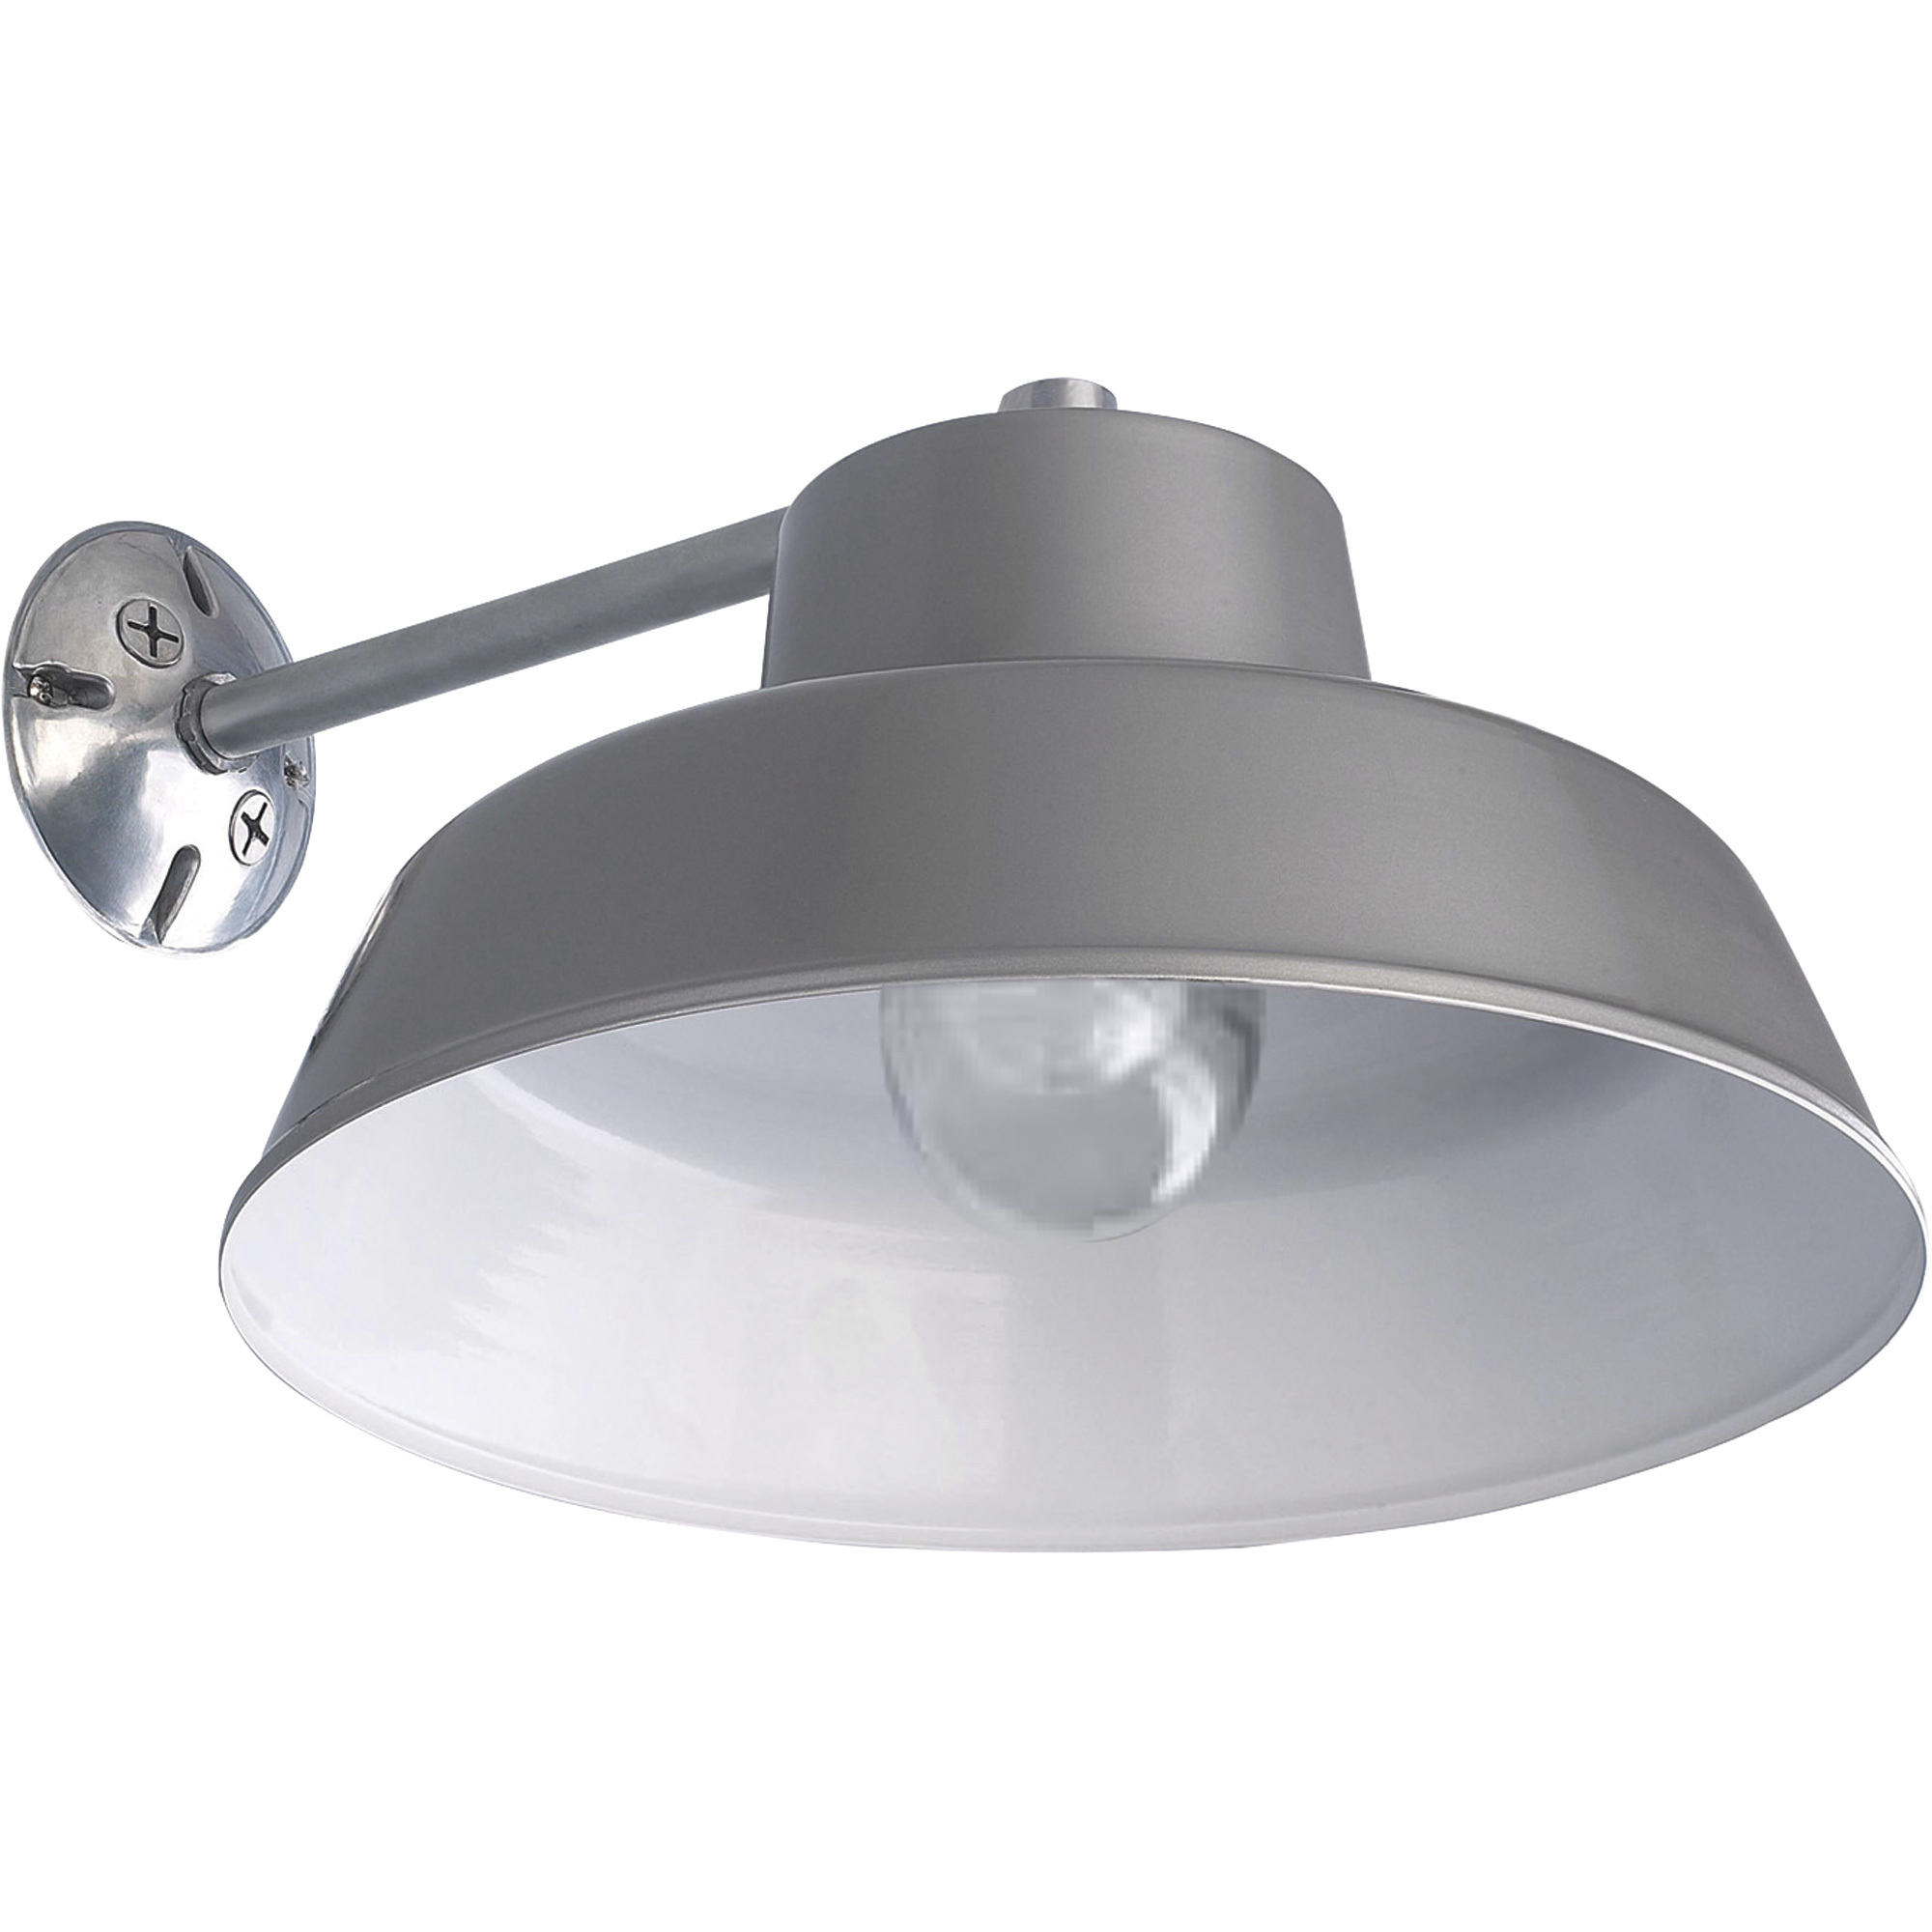 Canarm Ceiling/Wall Outdoor/Indoor Barn Light With Glass